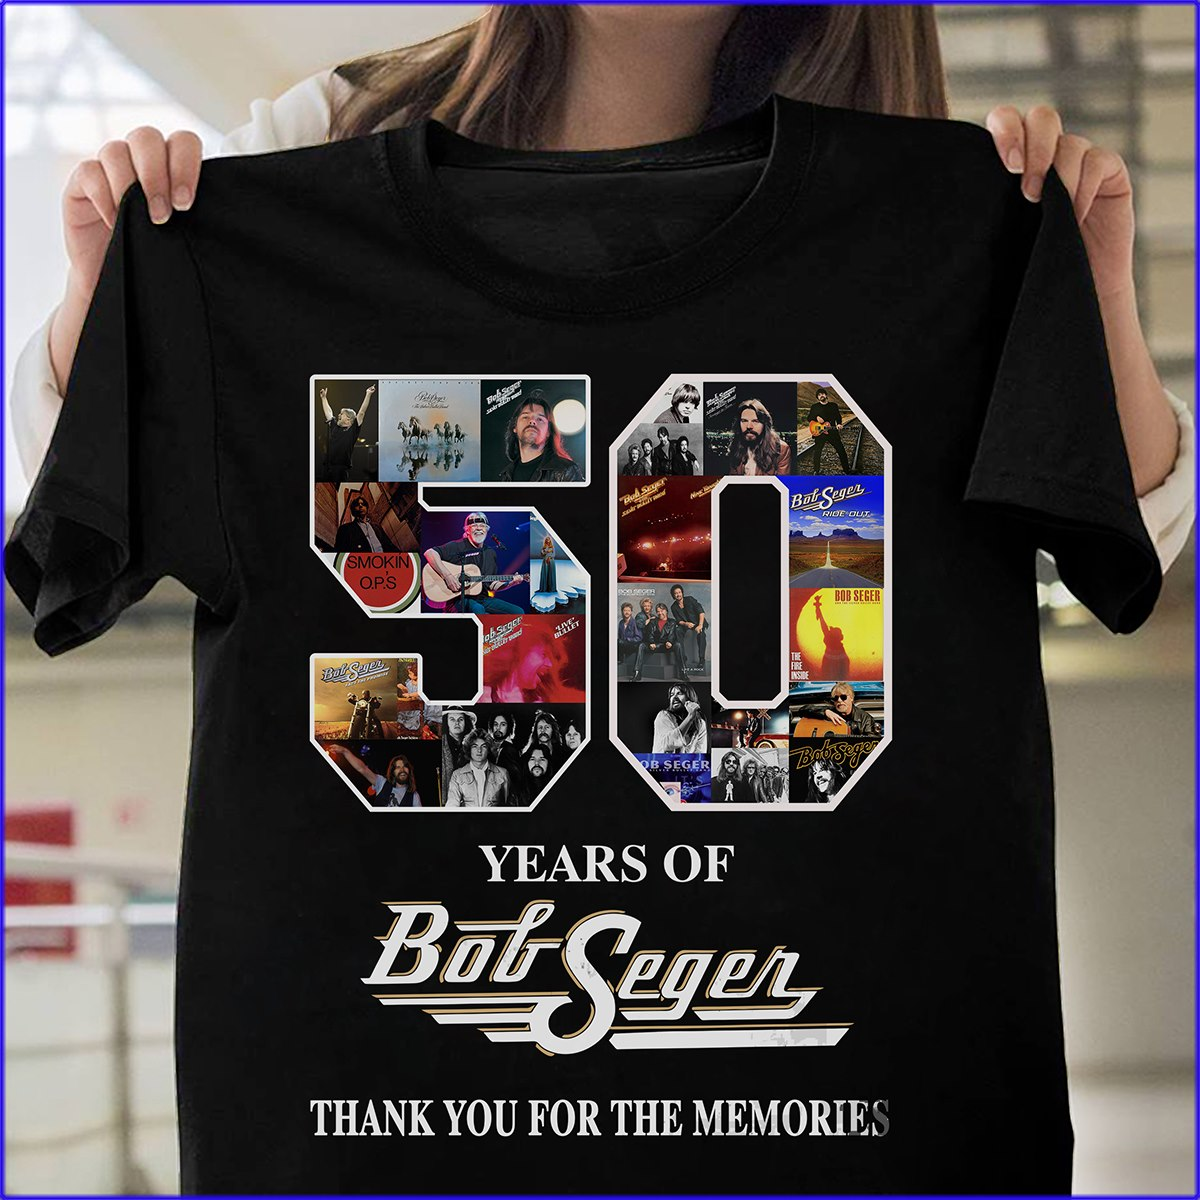 50 Years Of Bob Seger Thanks You For The Memories Shirt